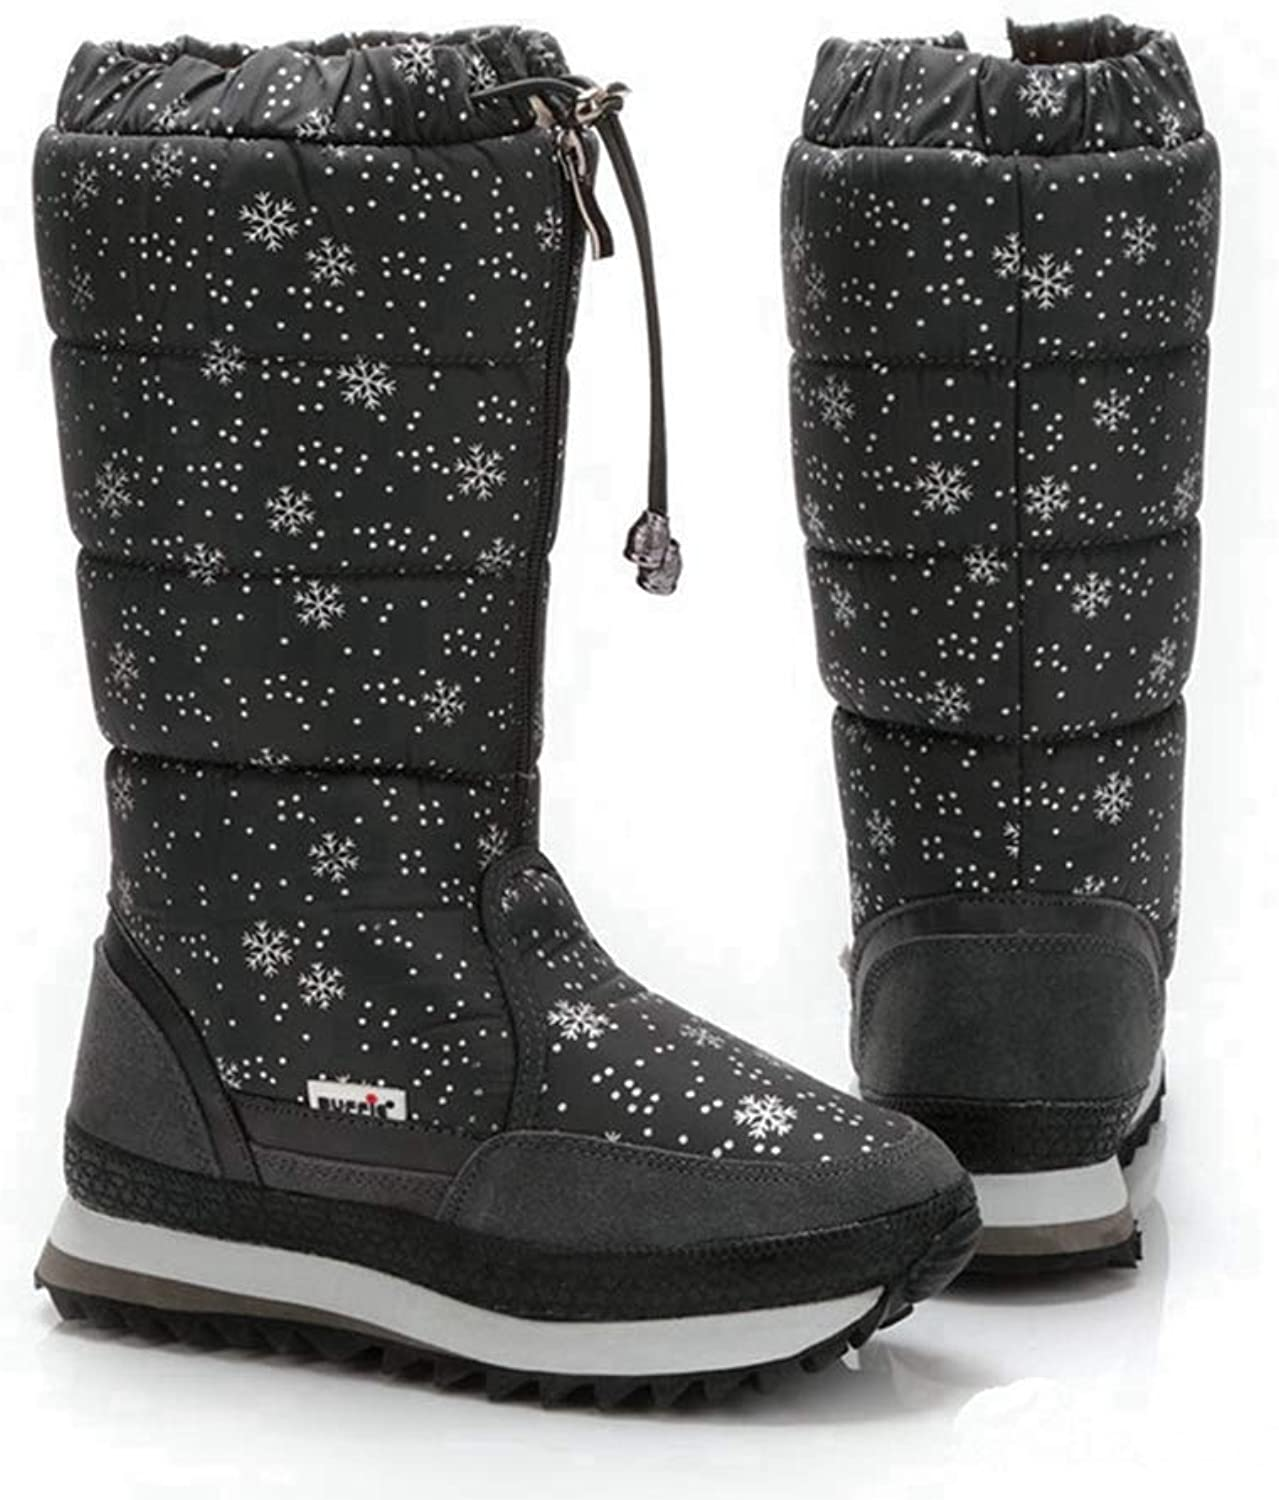 T-JULY Women Snow Boots Print Snowflake Mid-Calf Waterproof Warm Winter shoes Fur Boots